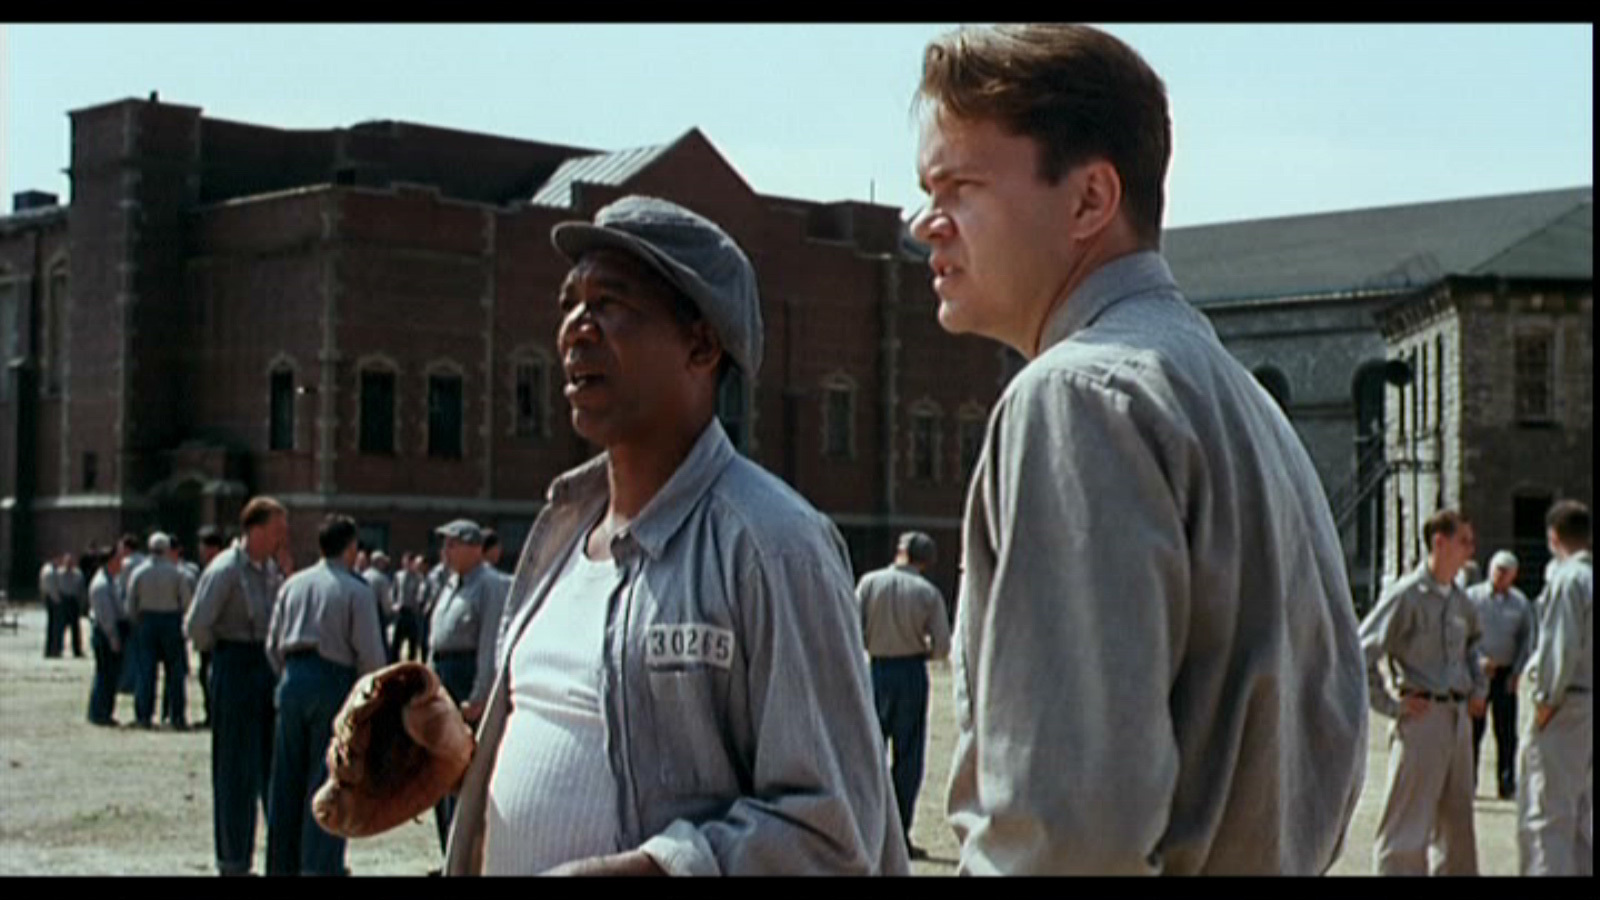 belonging in shawshank redemption and jasper The famous oak tree that served as a symbol of freedom and liberation in what was arguably the best film of the '90s, the shawshank redemption, has been.